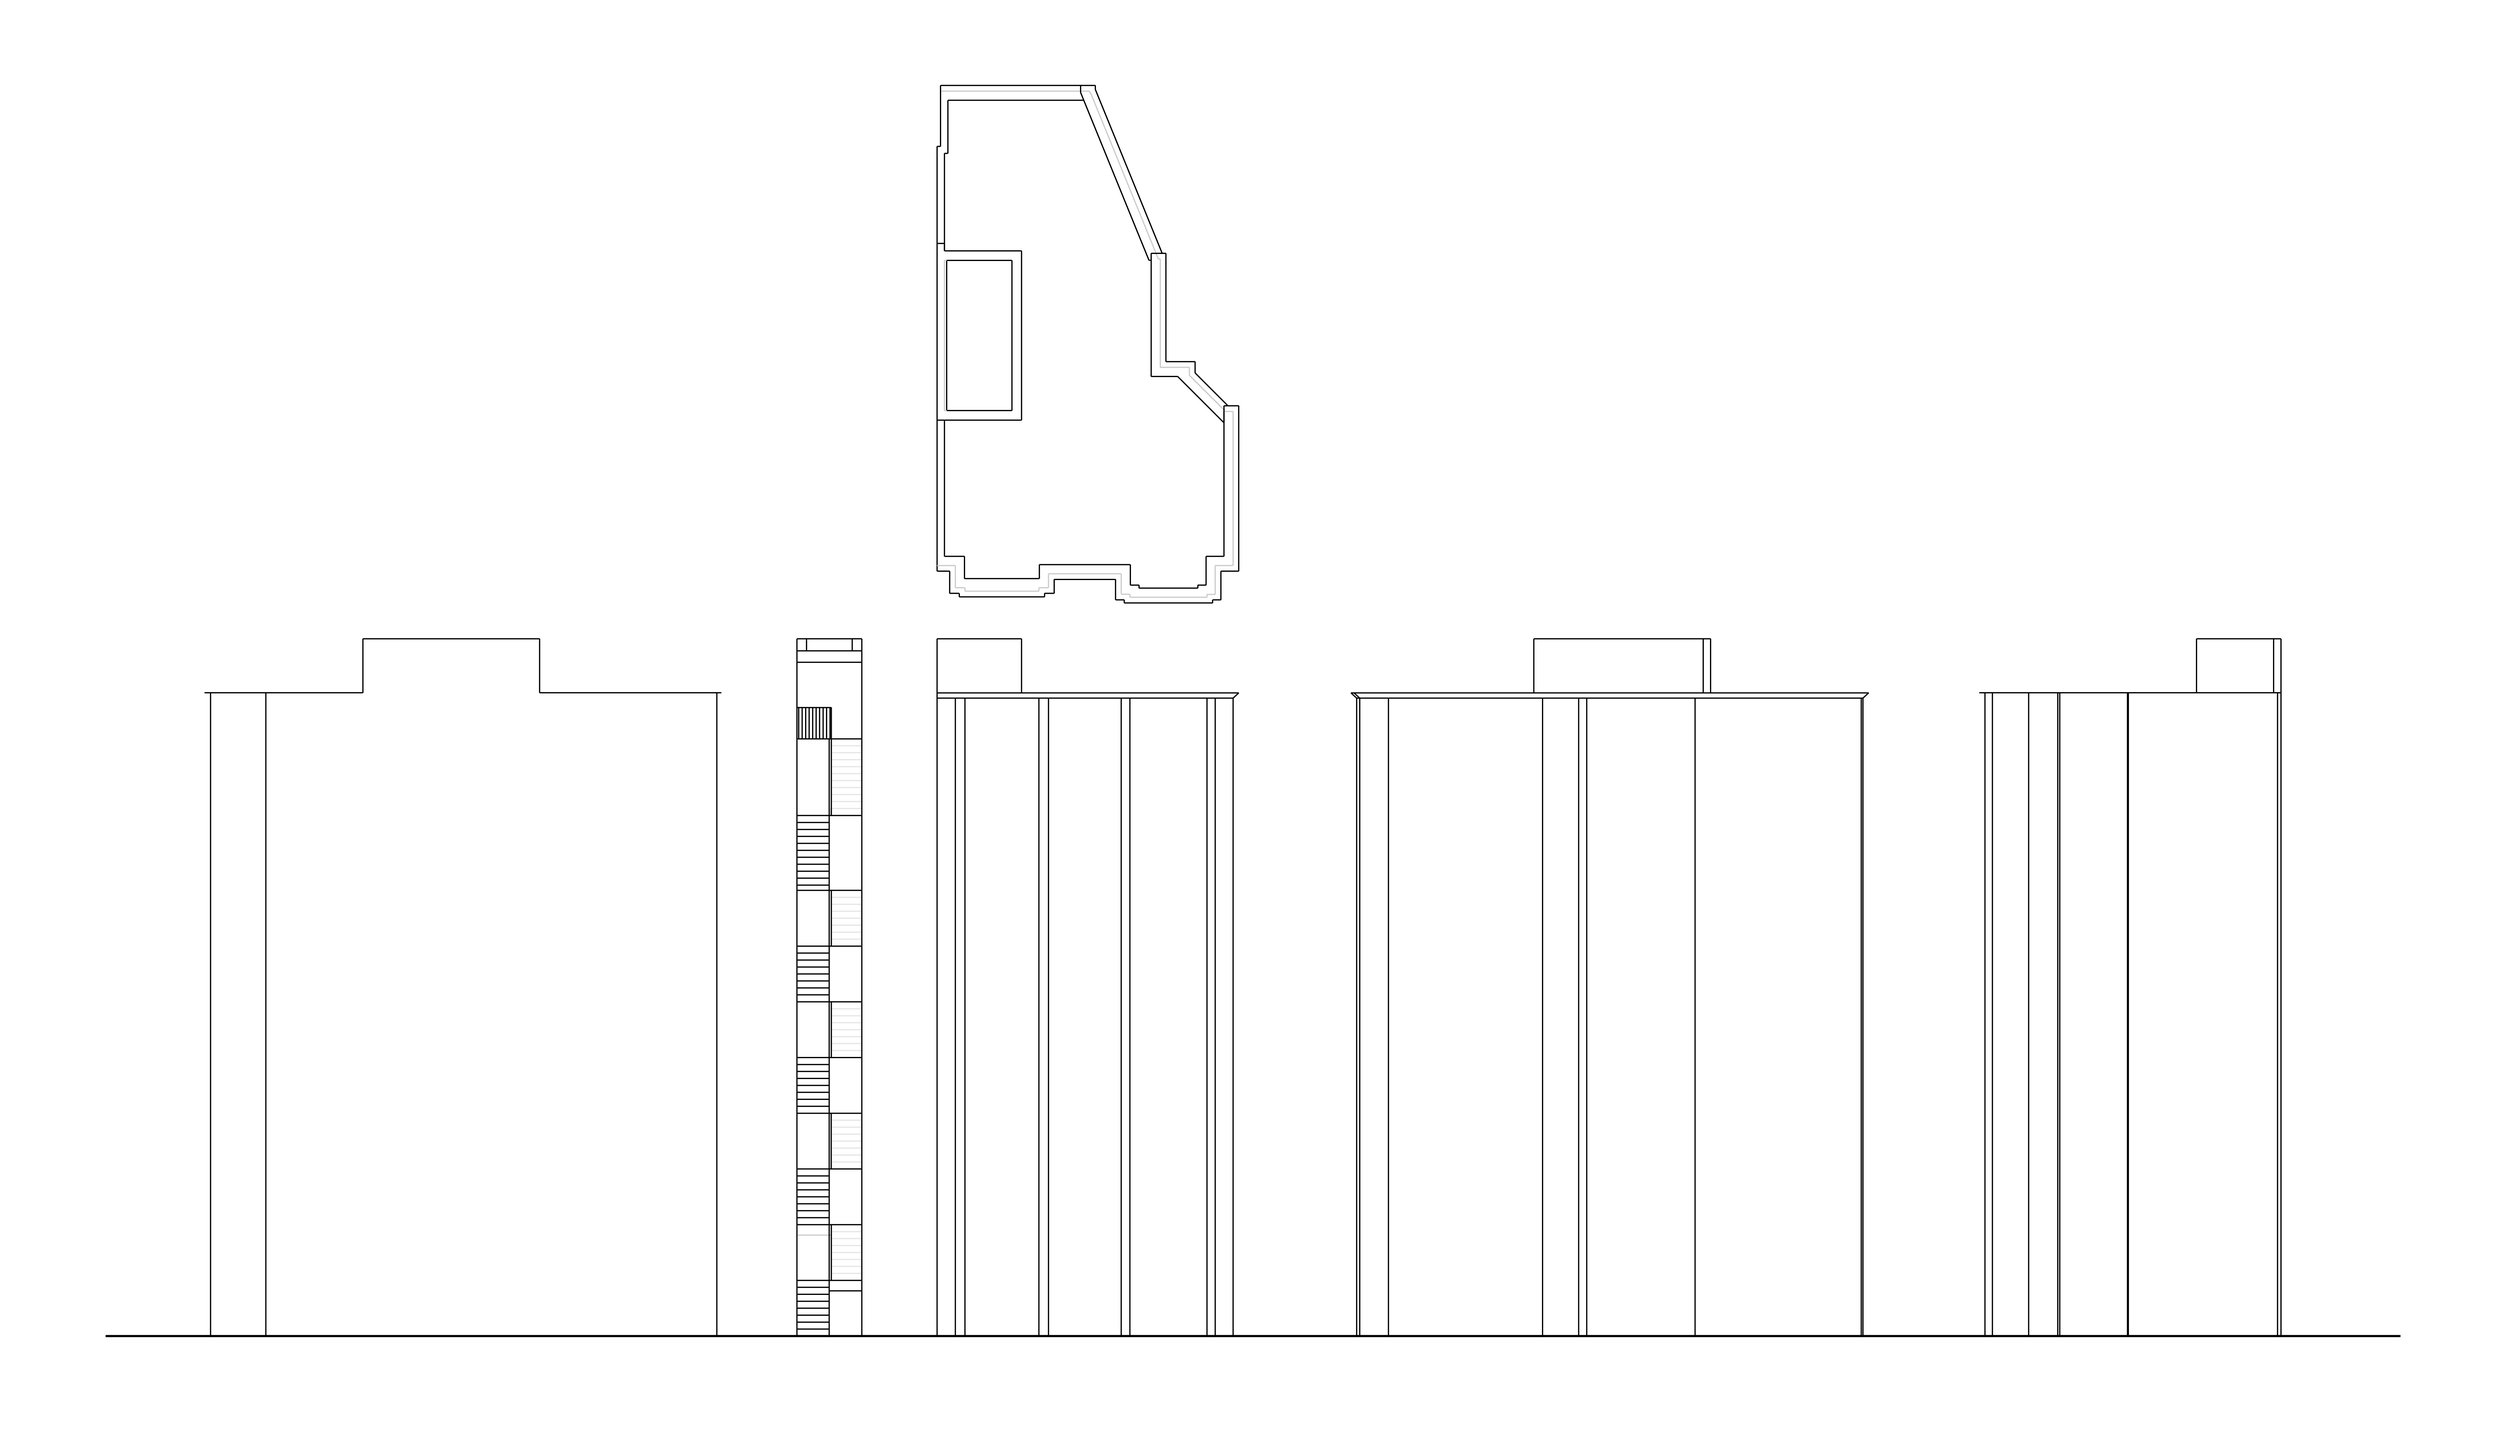 Incomplete elevation drawings of my current place of residence.